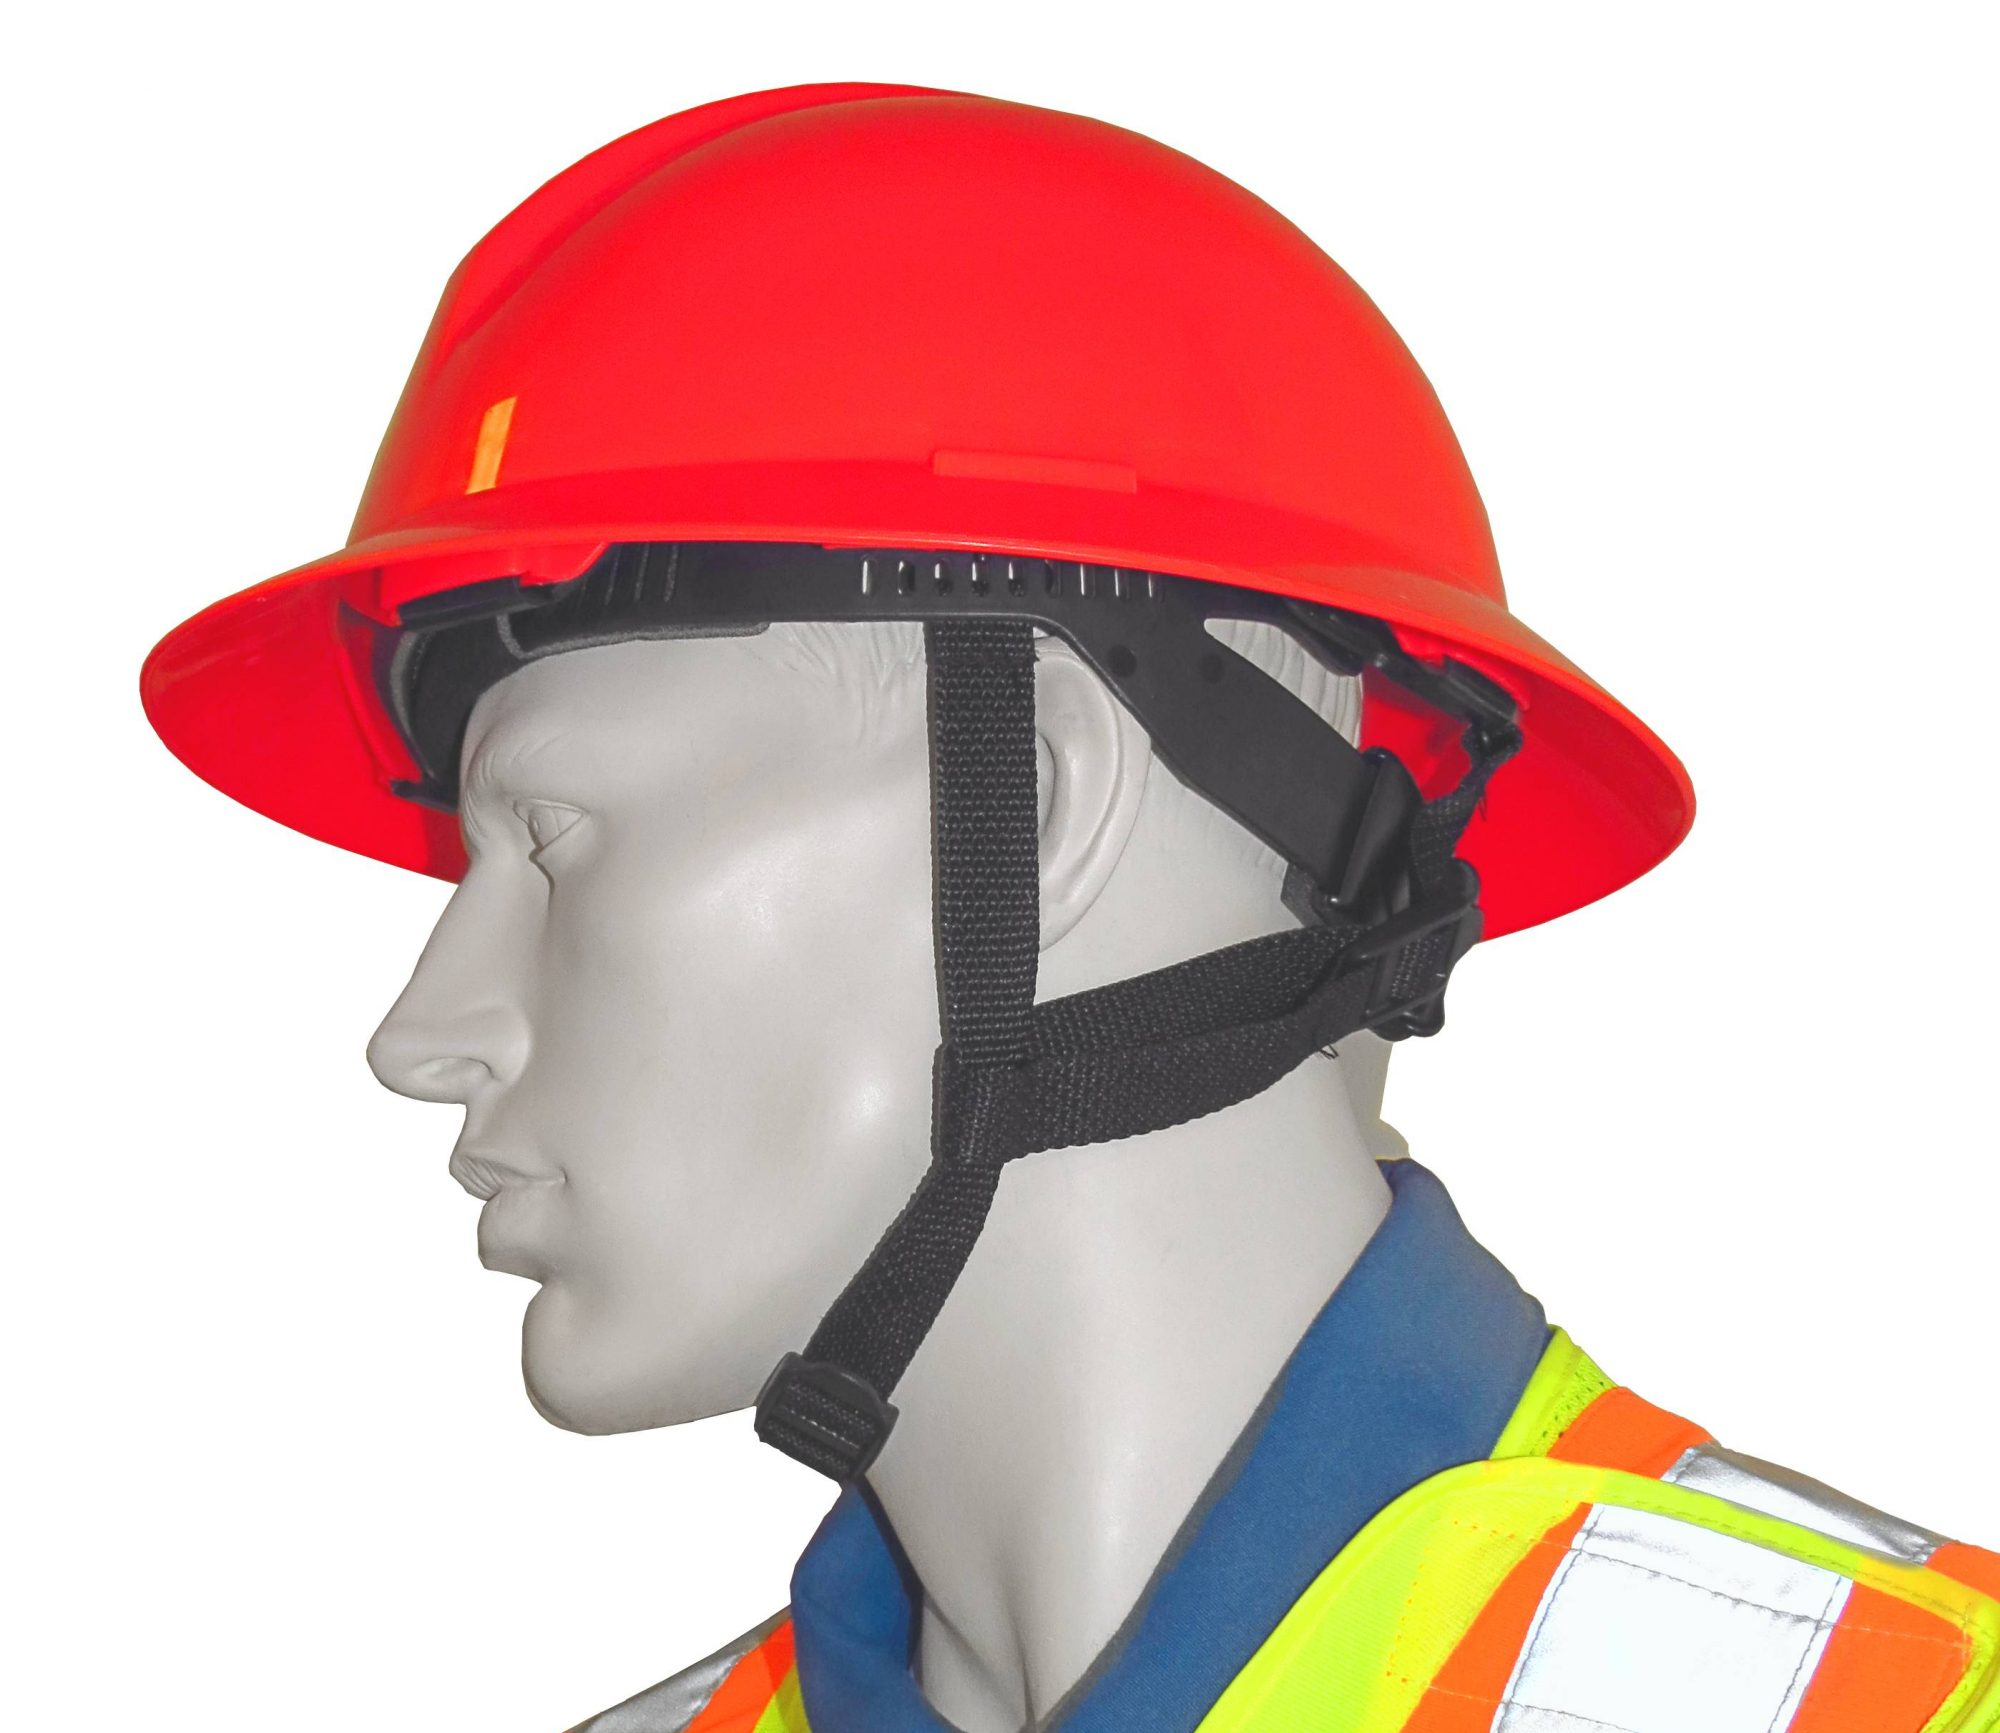 The safety helmet is an indispensable piece of protective equipment.